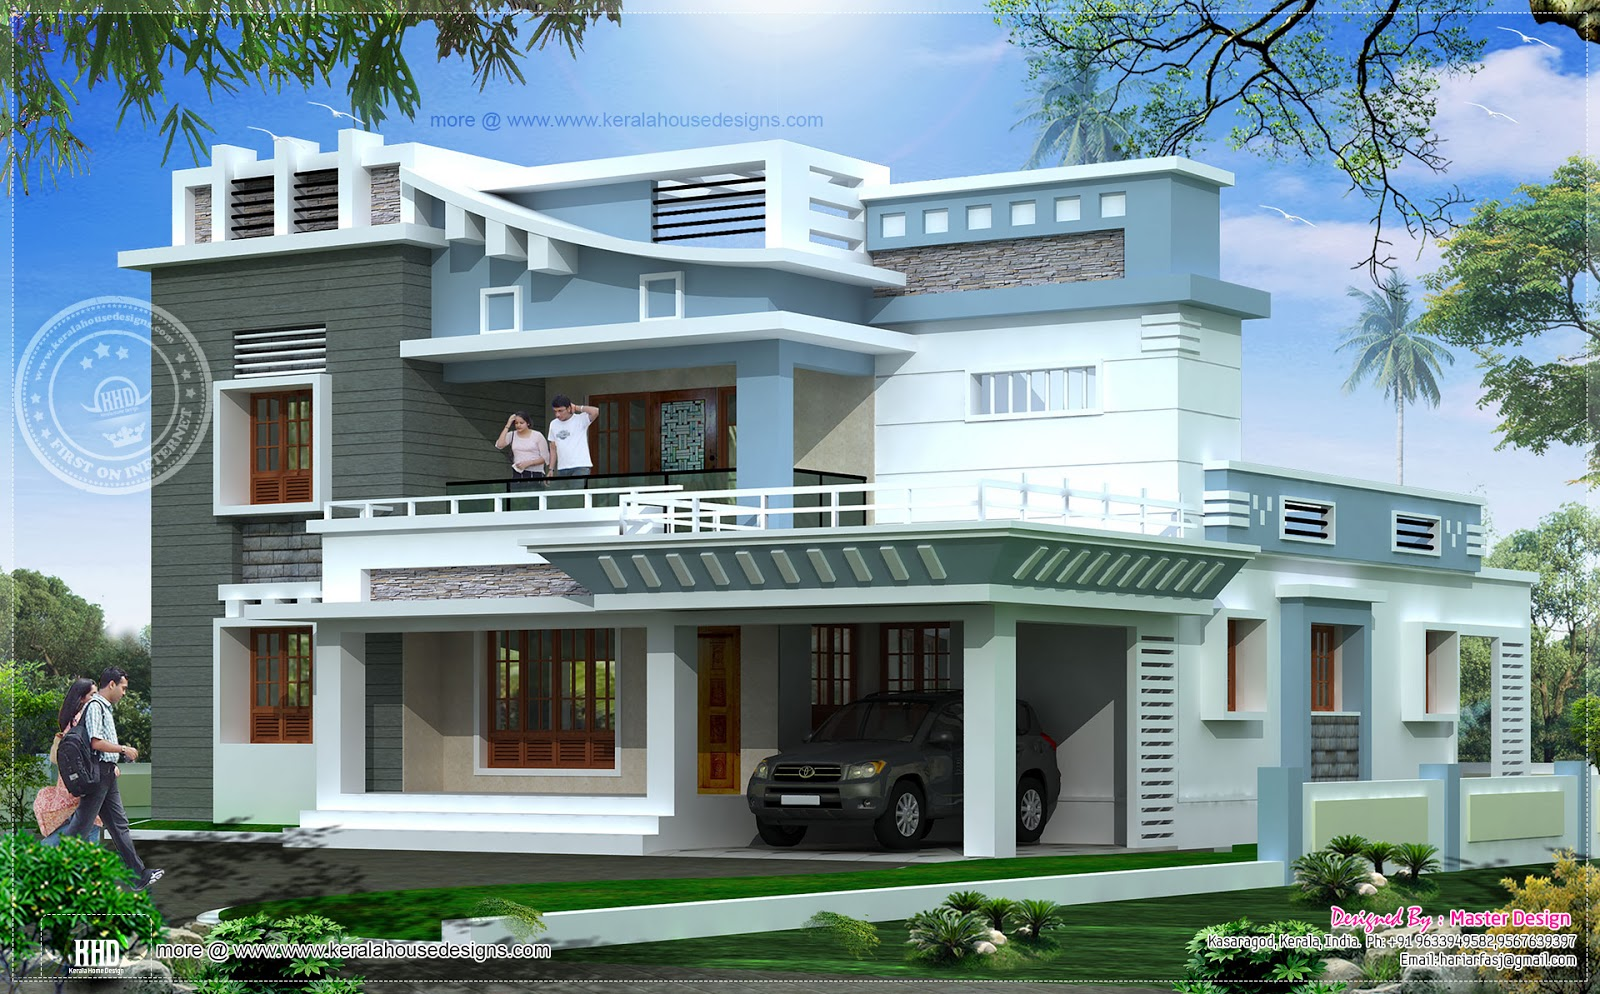 First Floor Elevation Models : Square feet exterior home elevation house design plans